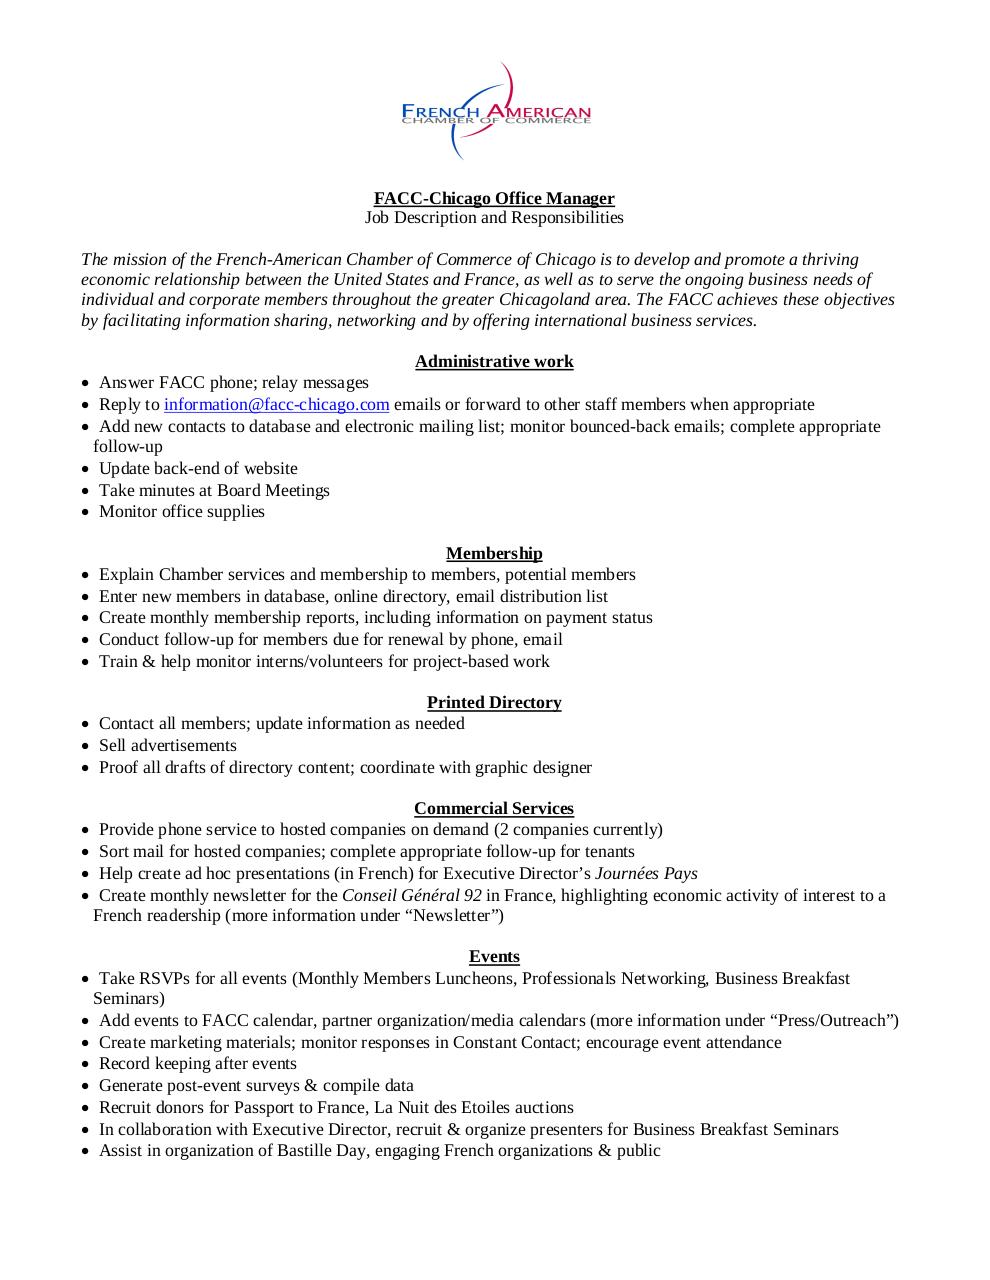 Job description office manager facc chicago job description office manager facc - Office administrator job responsibilities ...